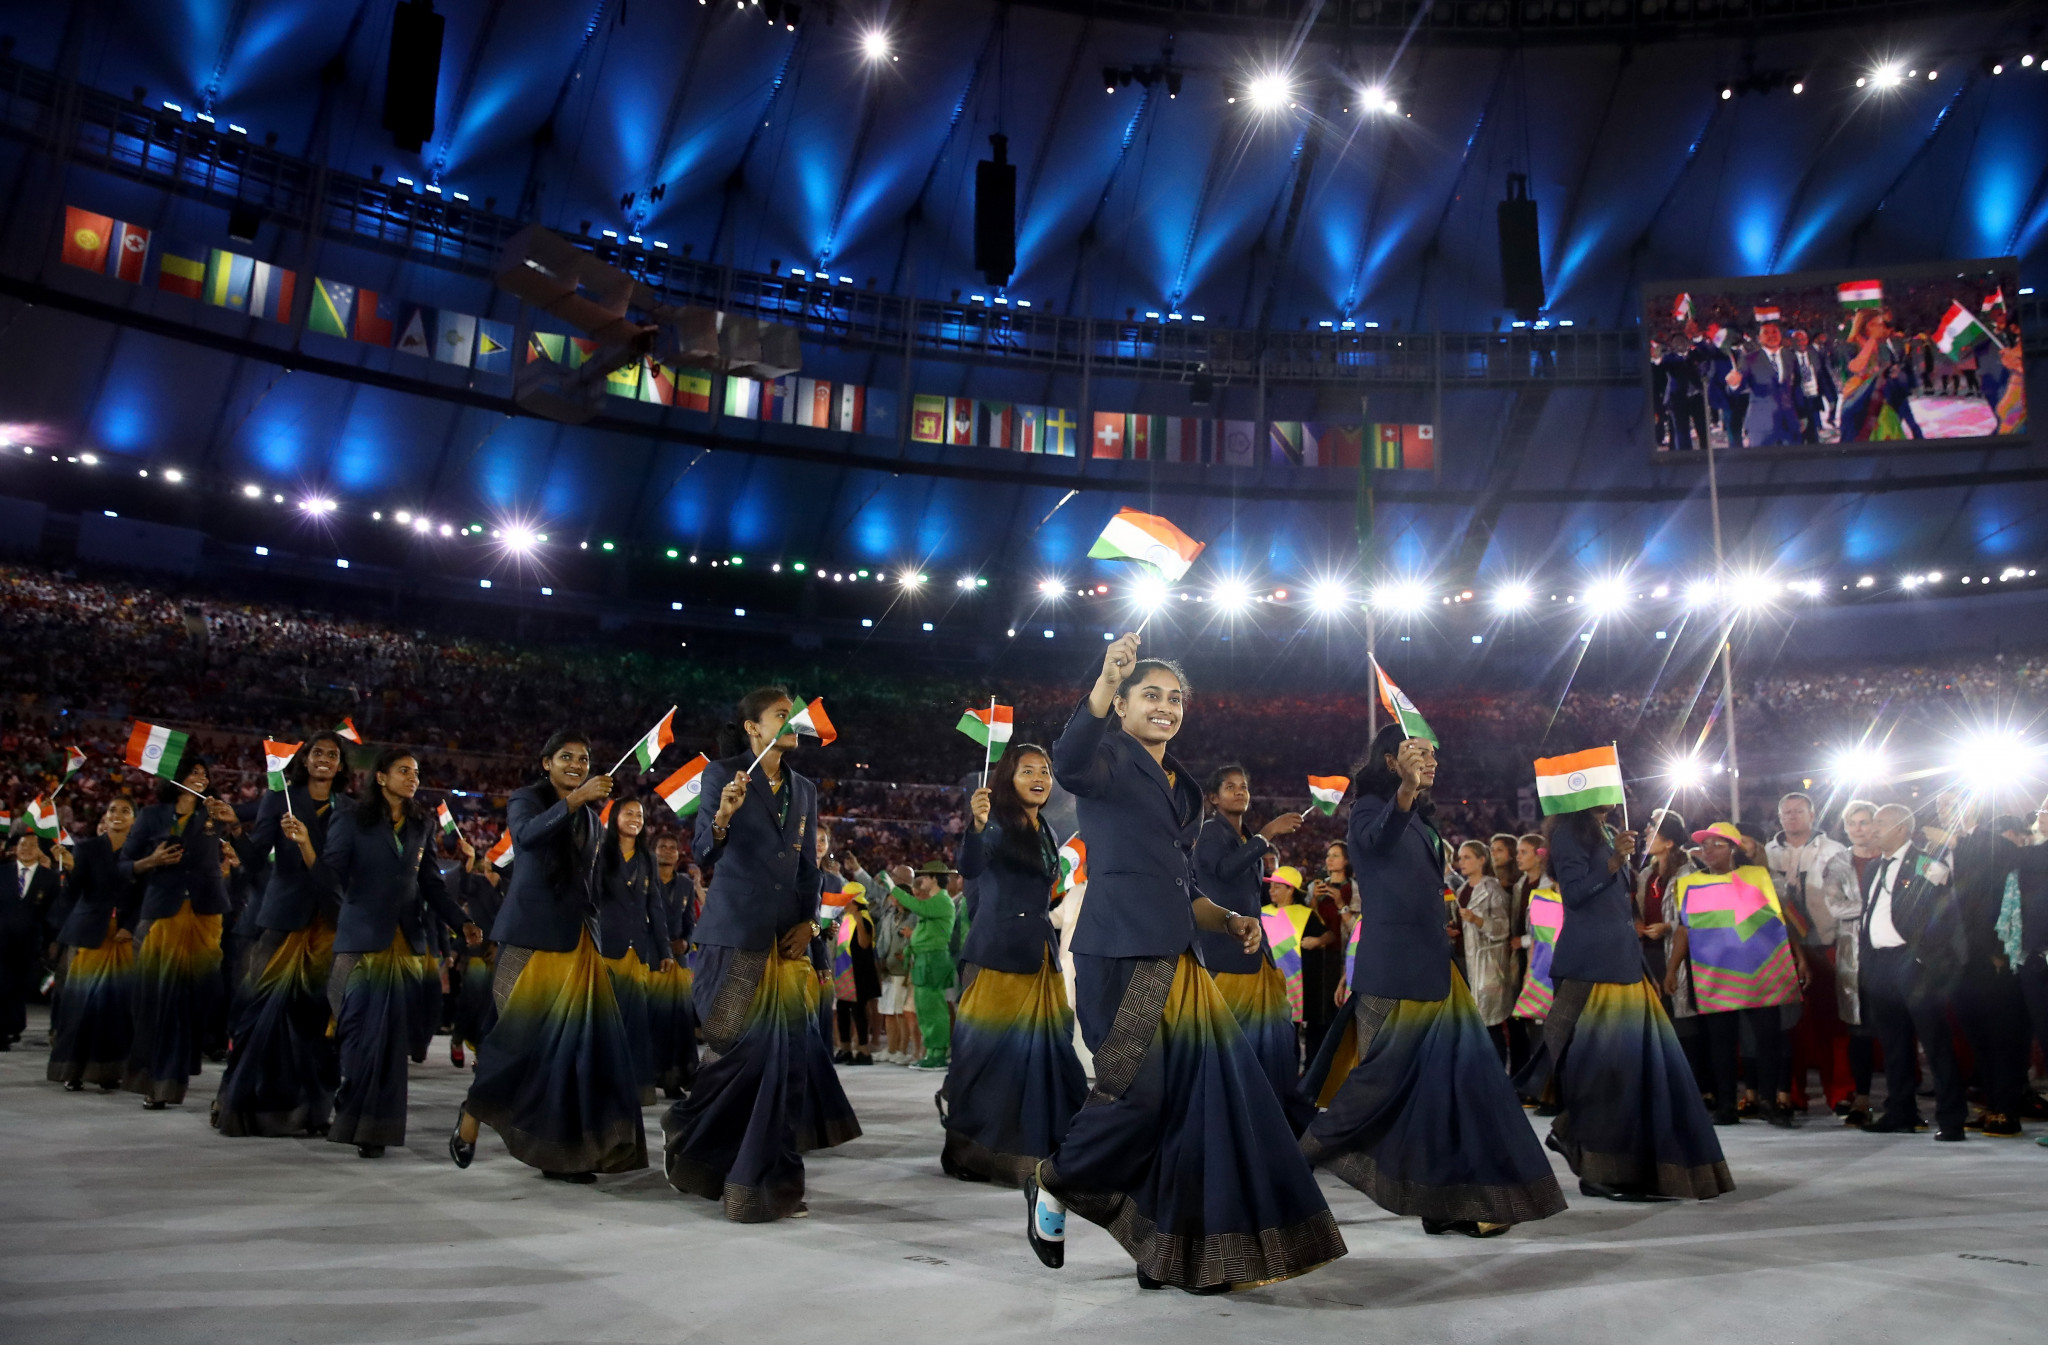 Indian female athletes have worn saris at past Opening Ceremonies ©Getty Images